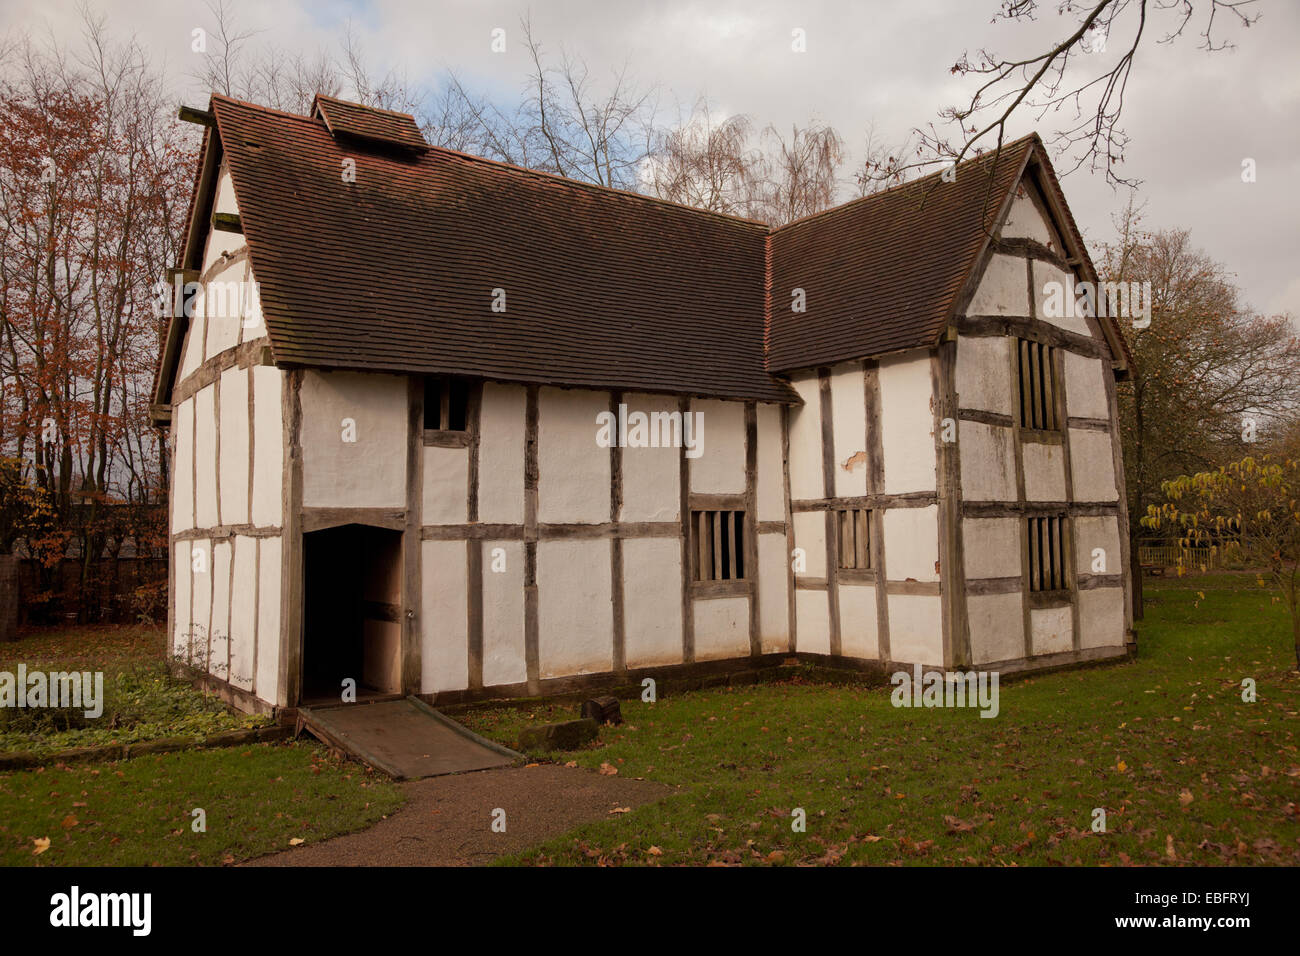 Merchants house in Avoncroft museum, Bromsgrove Worcs UK - Stock Image